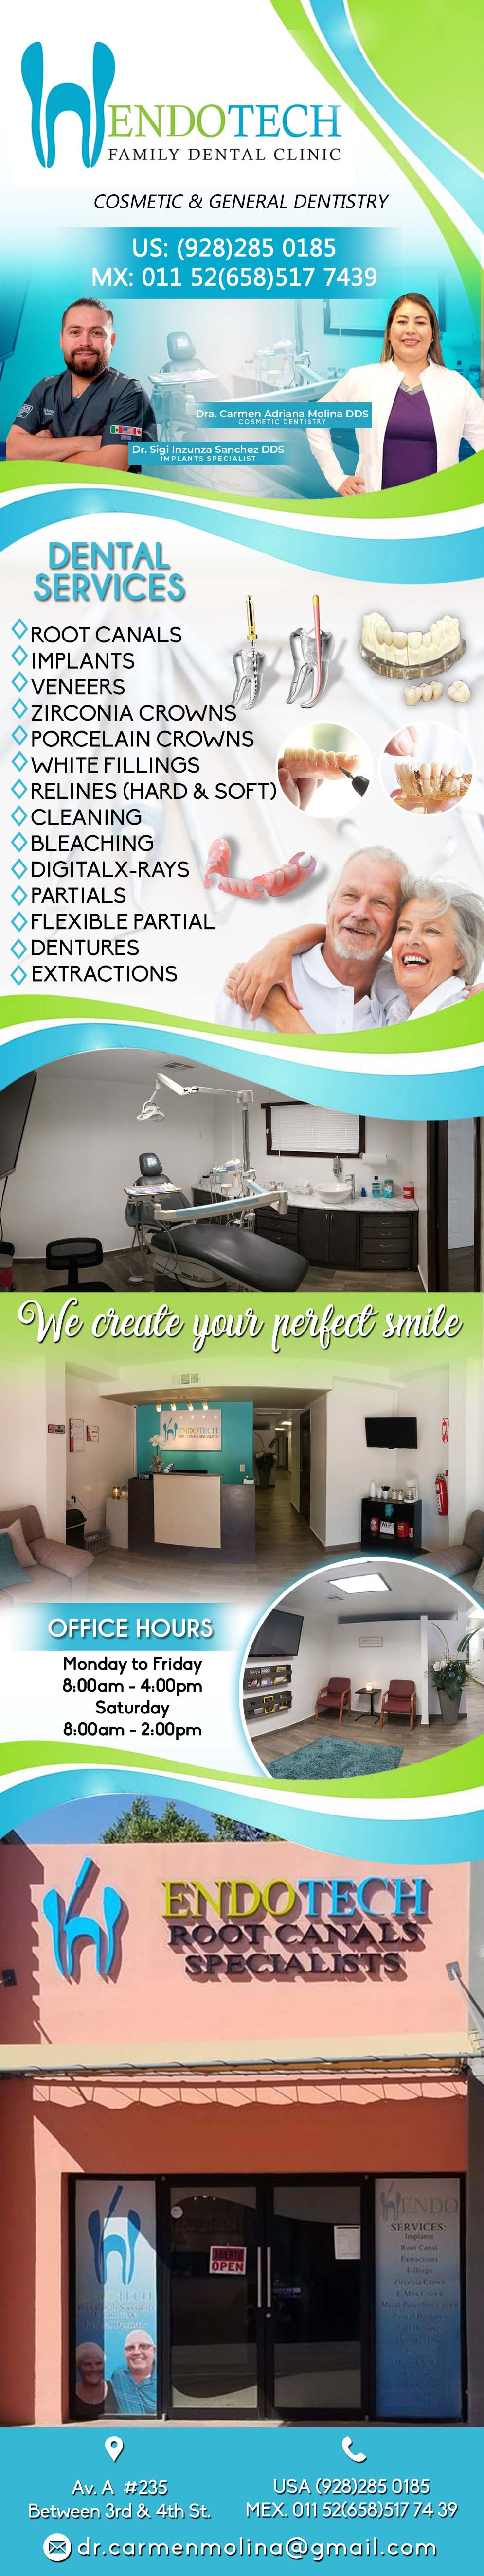 ENDOTECH  Adriana Molina DDS in Algodones  in Algodones  Root Canals Specialists, Cosmetic and General Dentistry. Dra. Carmen Adriana Molina DDS. dentist dentista dentistry root canals specialists cosmetic and general dentistry doctora dental cirujano dentista  clinic endotech endo tech